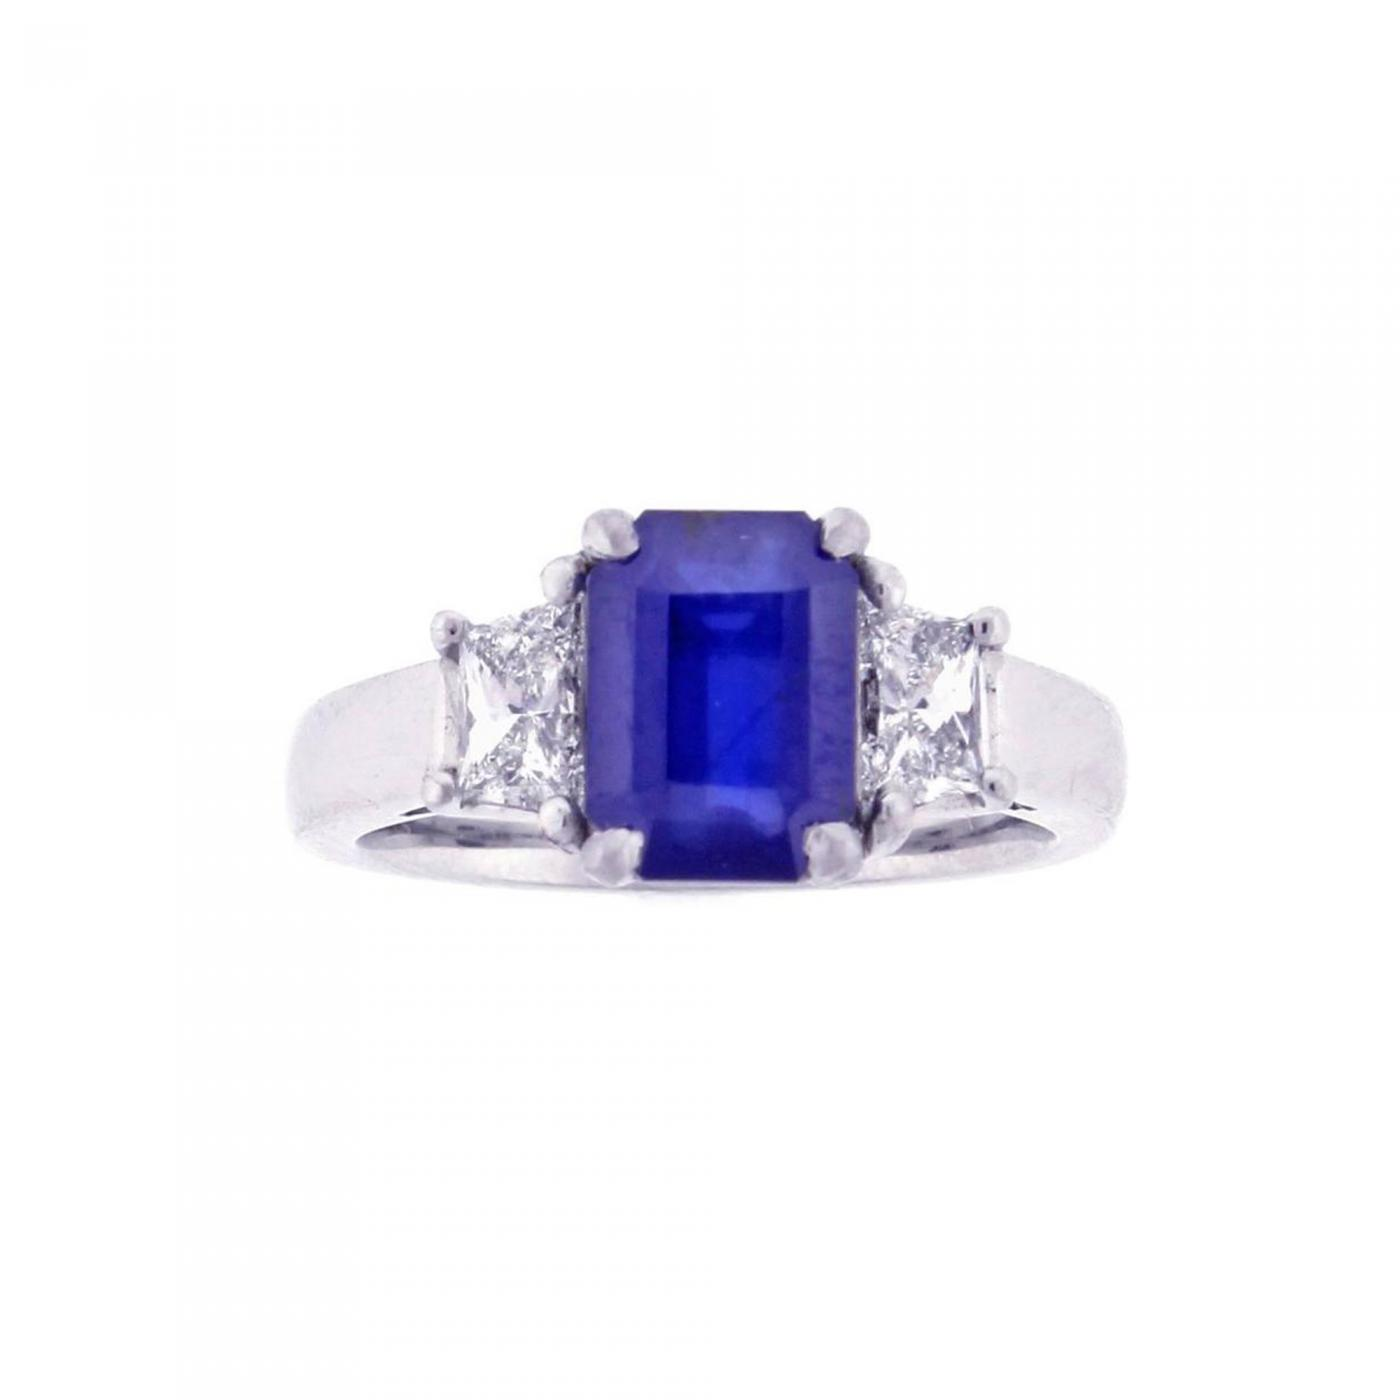 sells christies lot sapphire amethyst kashmir at blog burma s for million christie ring